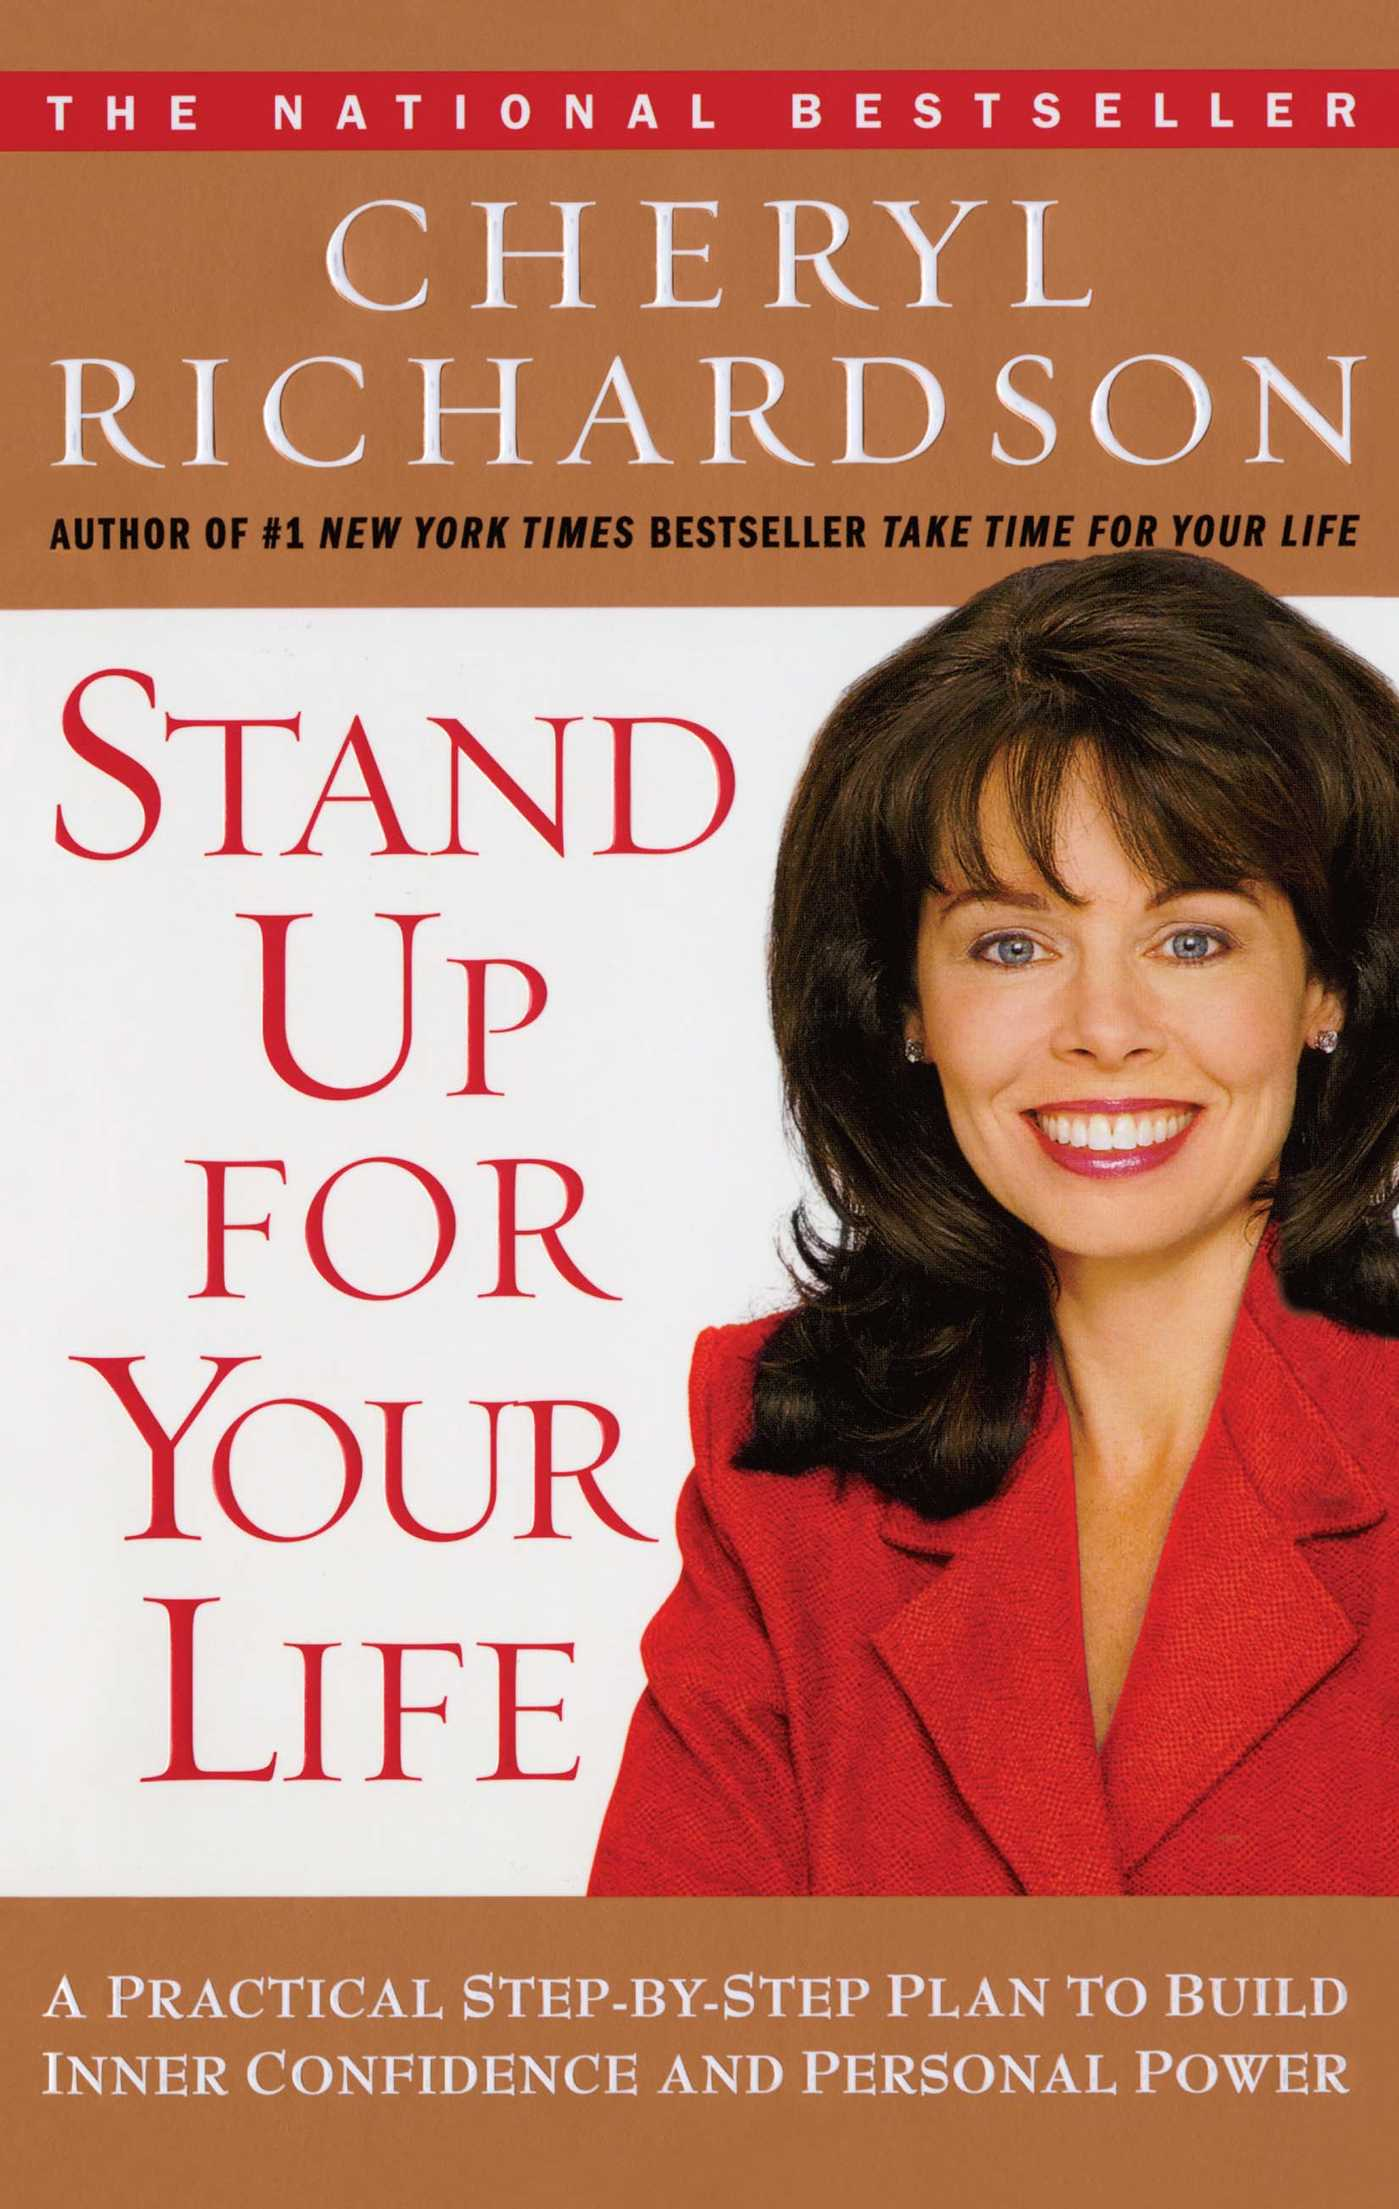 Stand up for your life 9780743226516 hr